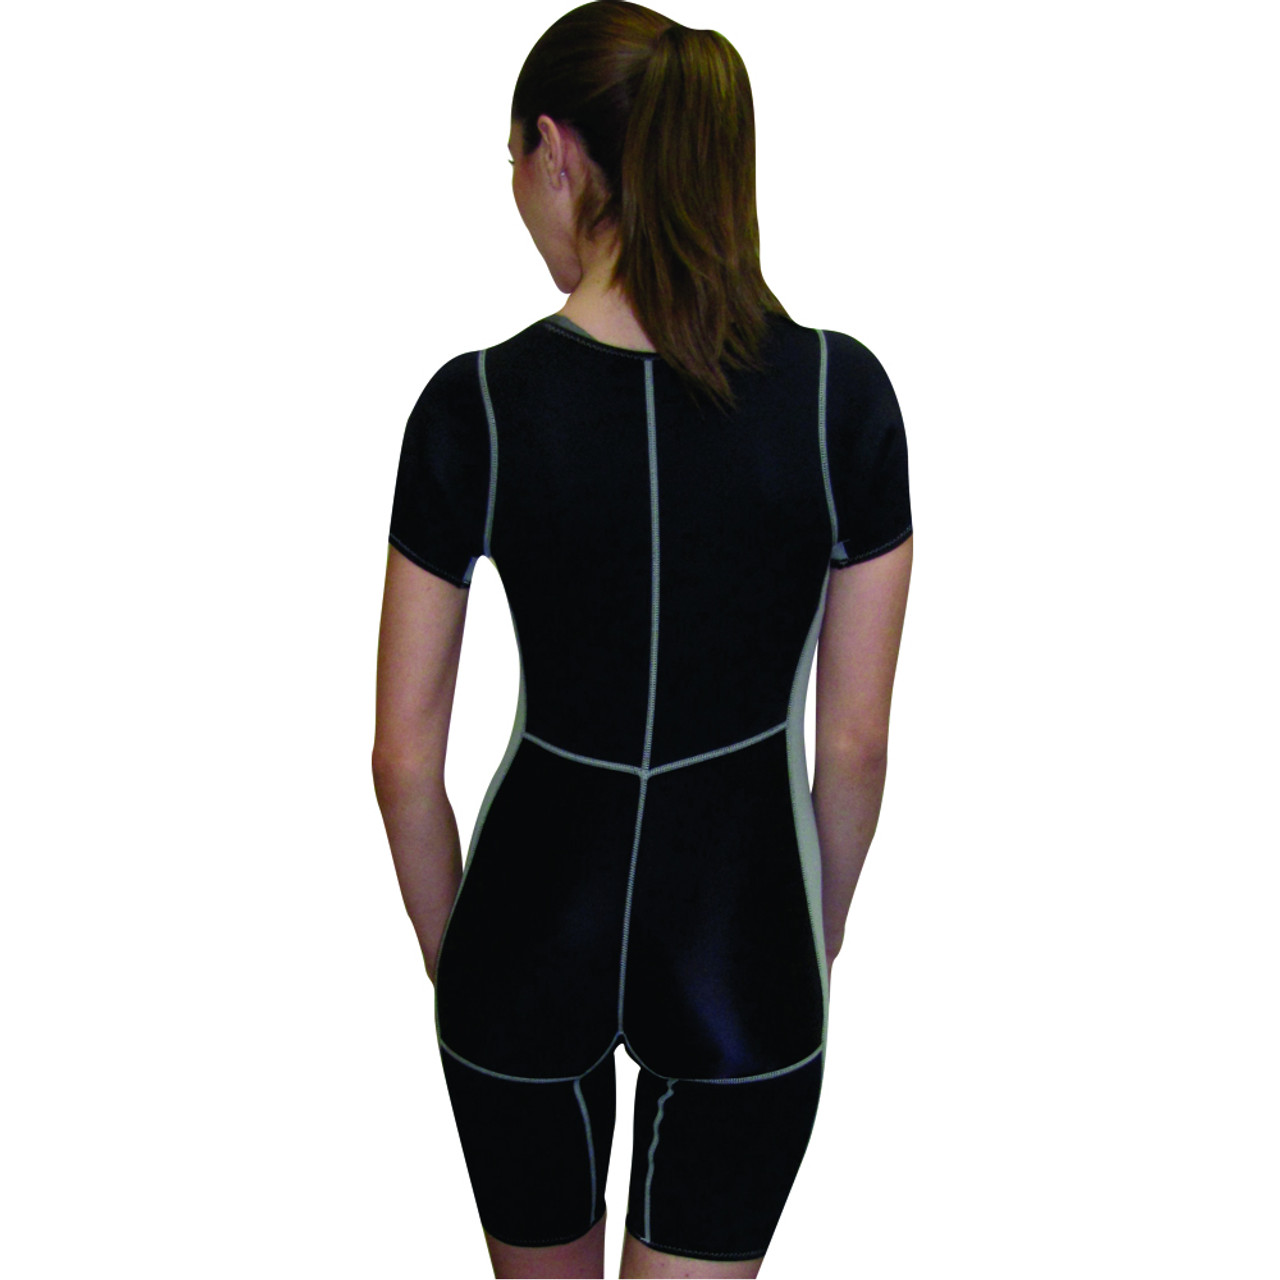 d555ab1feac7a Neoprene Training Body Suit with Sleeves ...